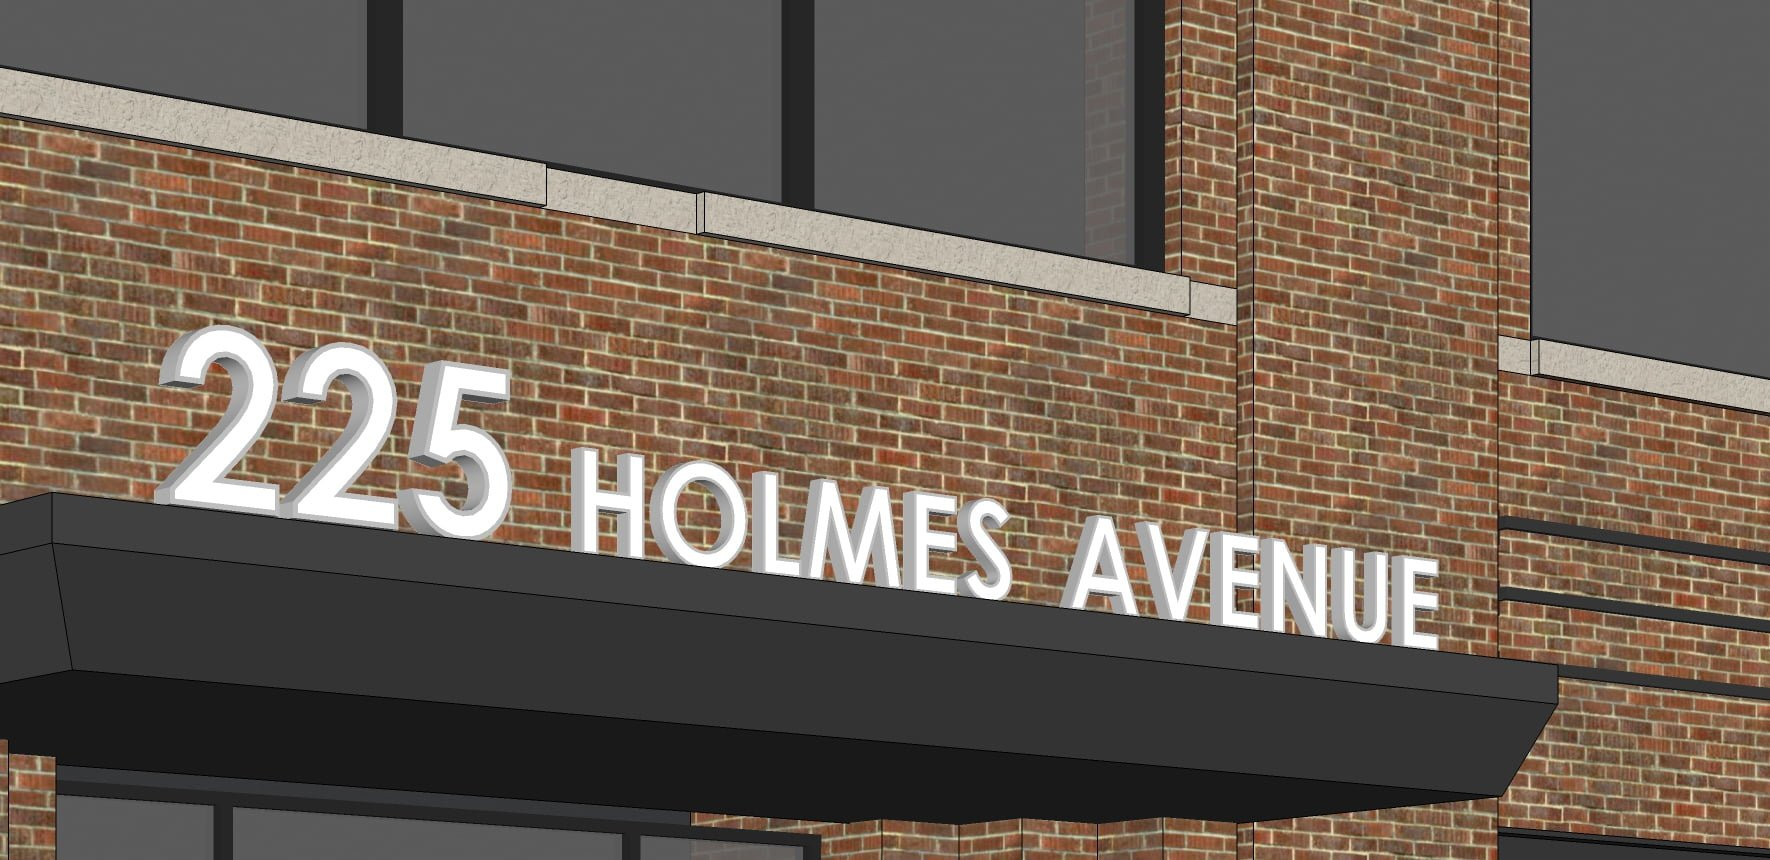 225 Holmes Avenue South Entry (1770x860)